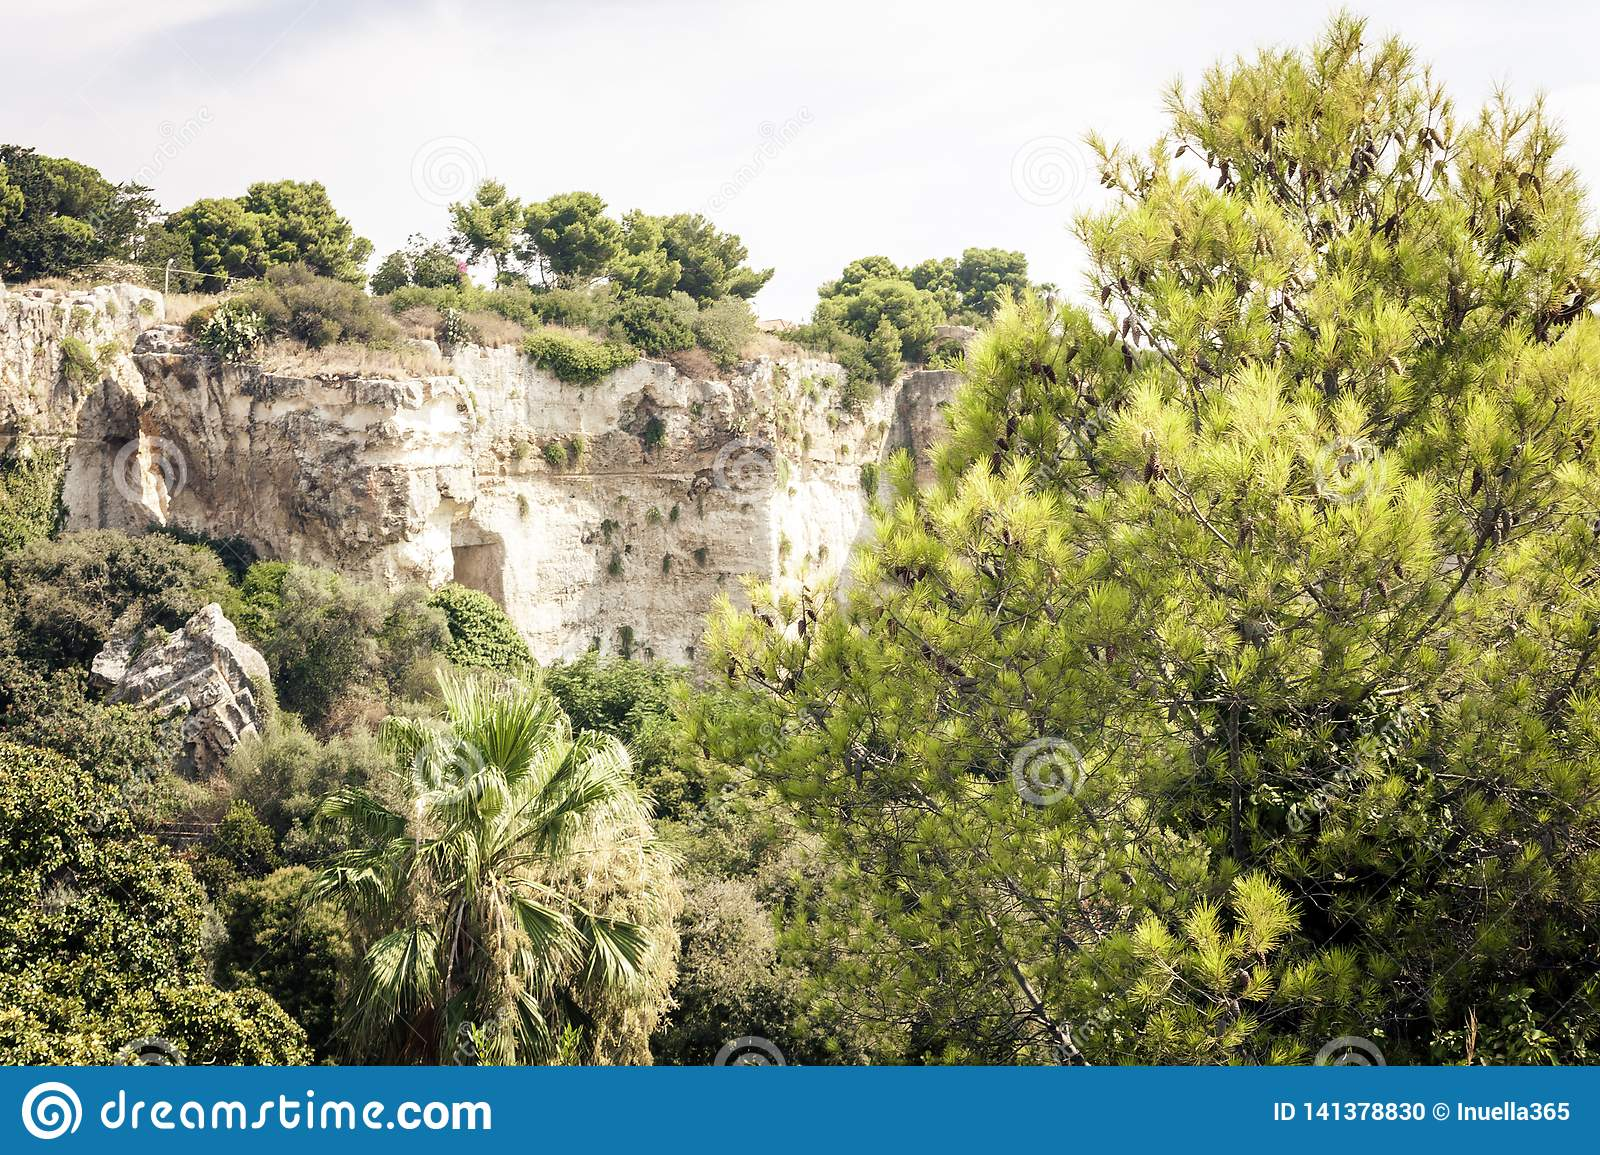 Archeological park, rocks near Greek Theatre of Syracuse, ruins of ancient monument, Sicily, Italy